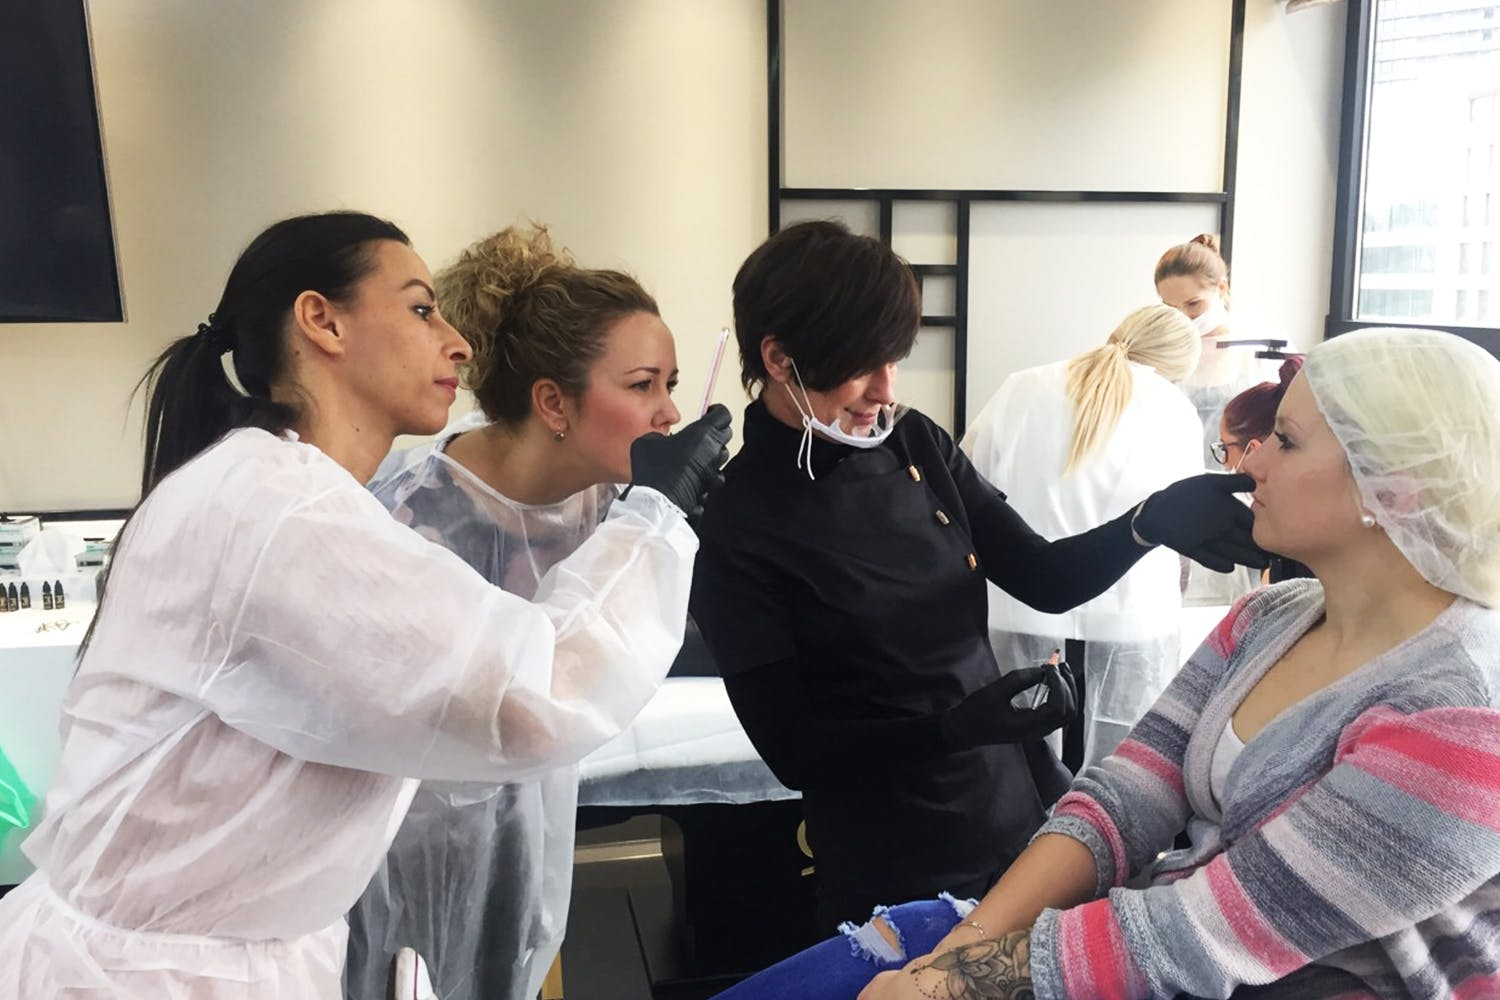 Although a nurse by profession, Zlata chose her career path in the beauty industry.